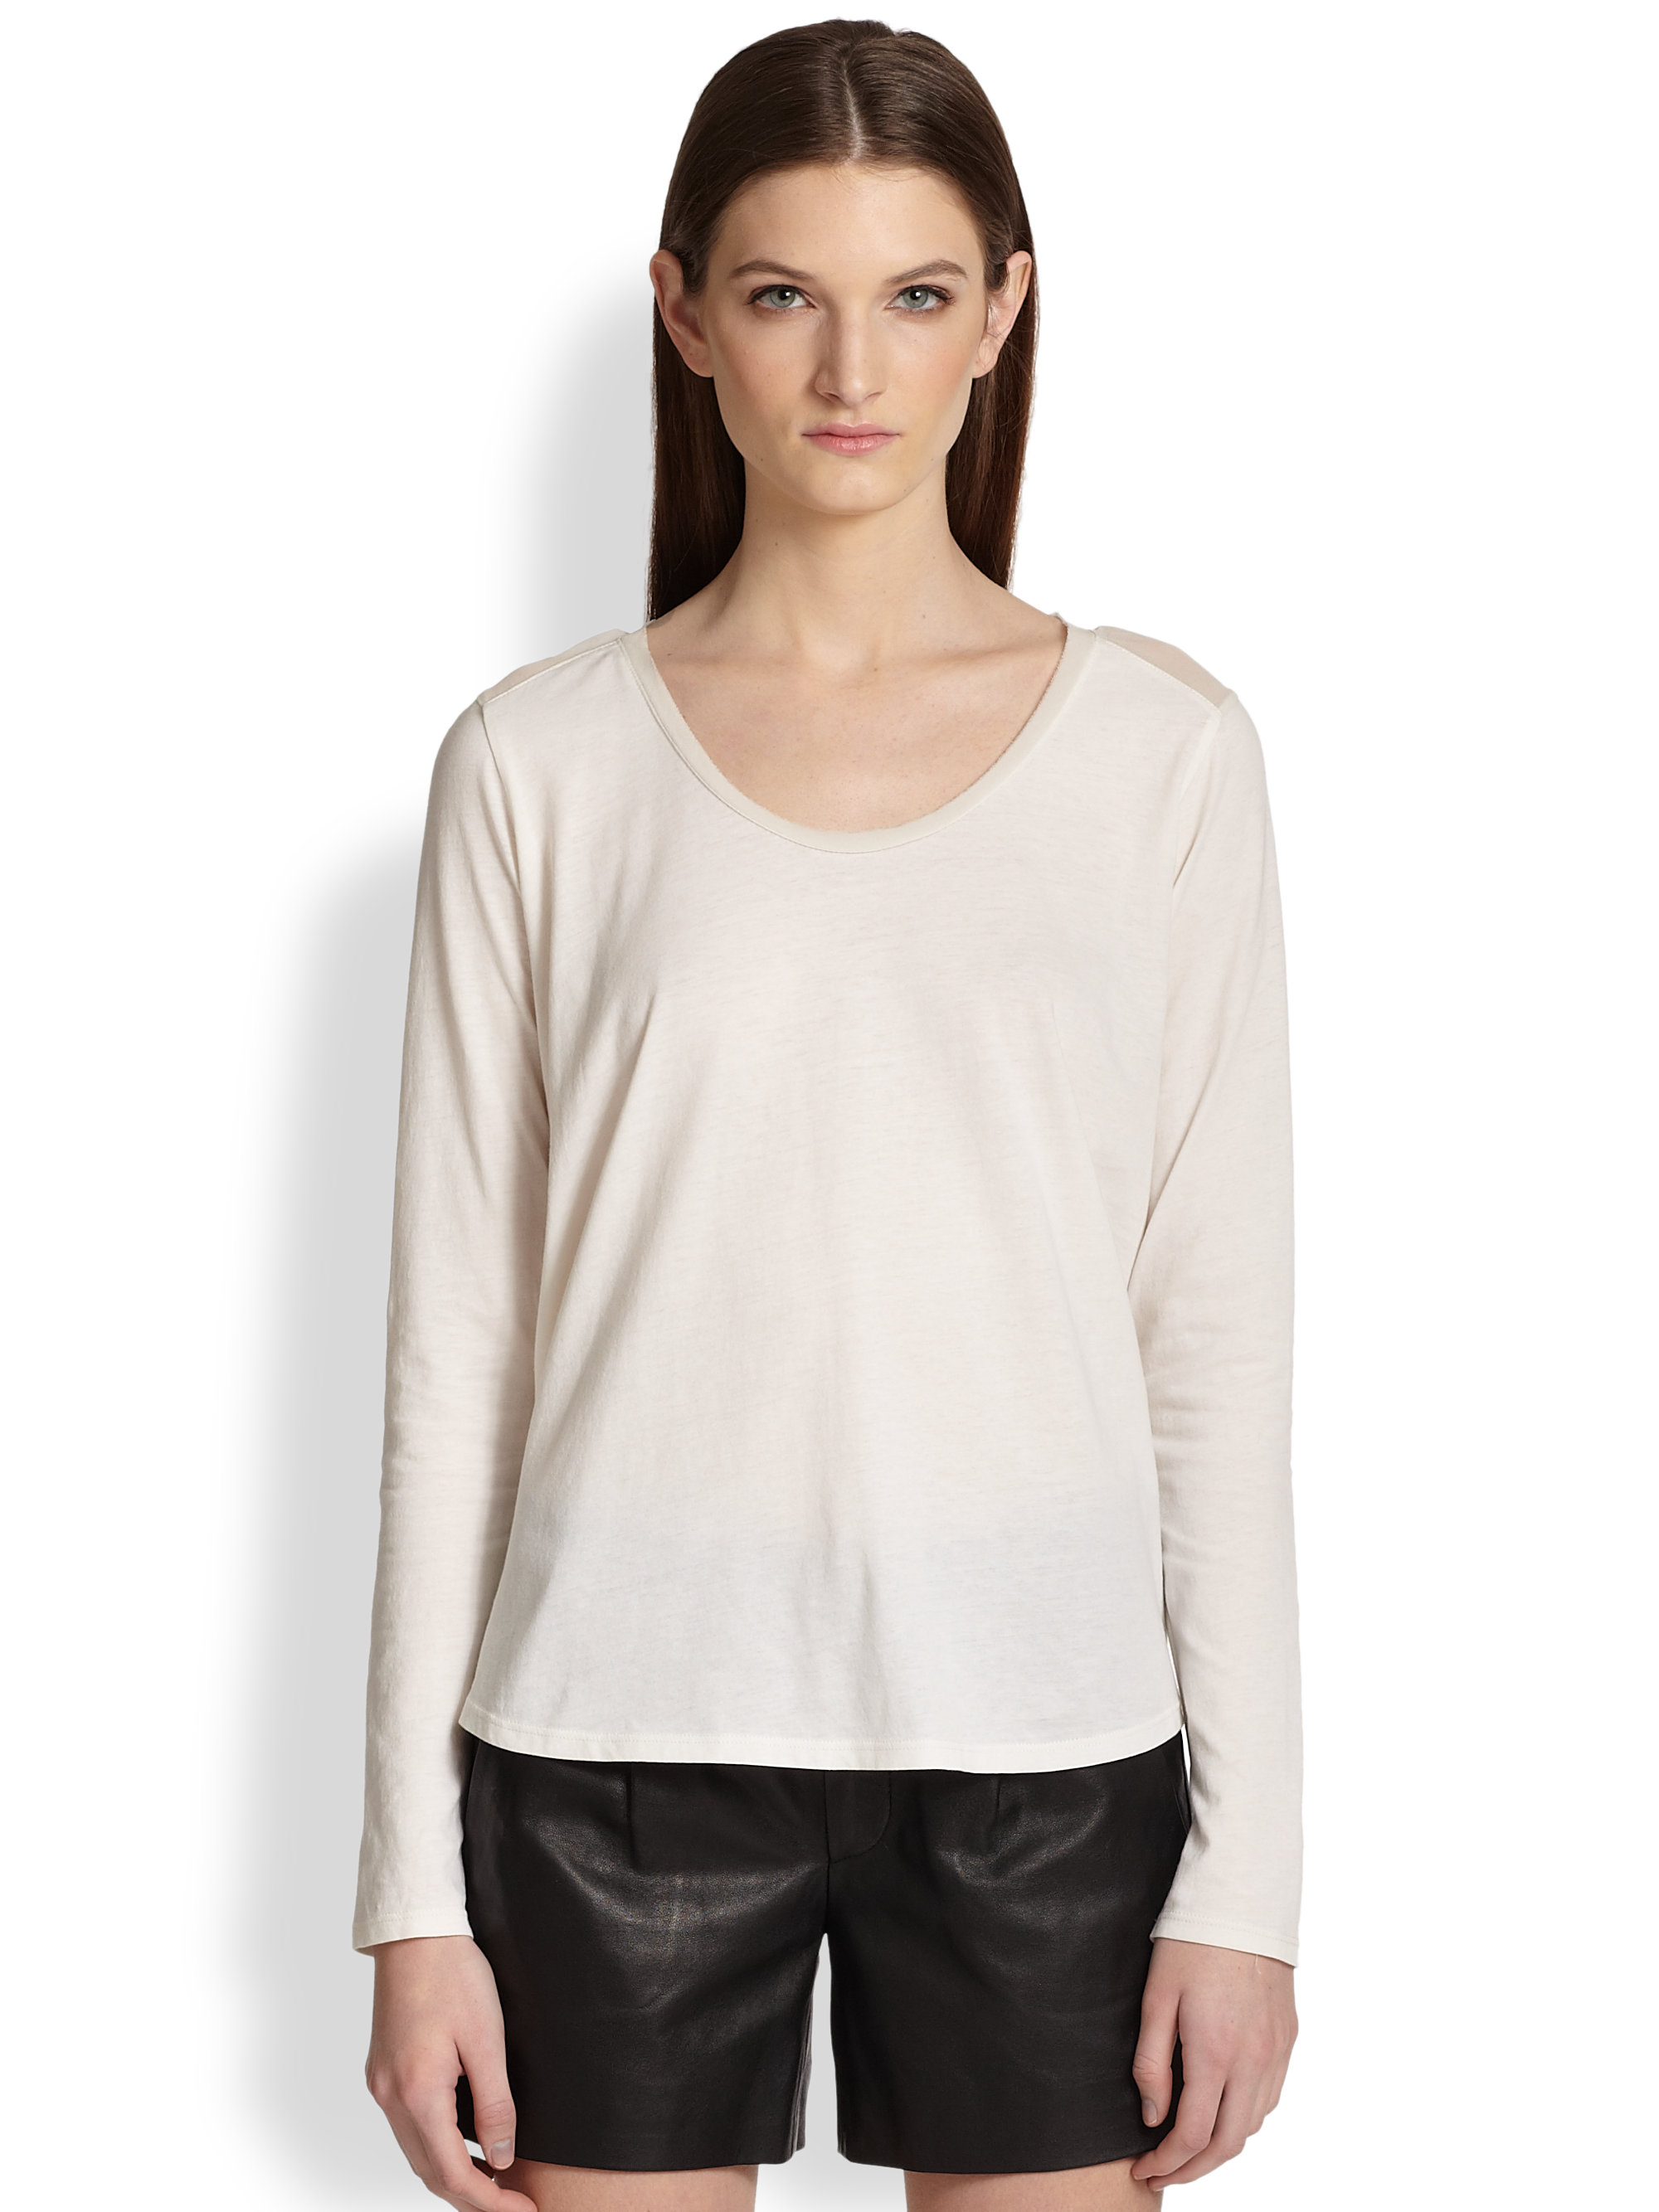 Vince silk panel tee in beige lyst for Vince tee shirts sale